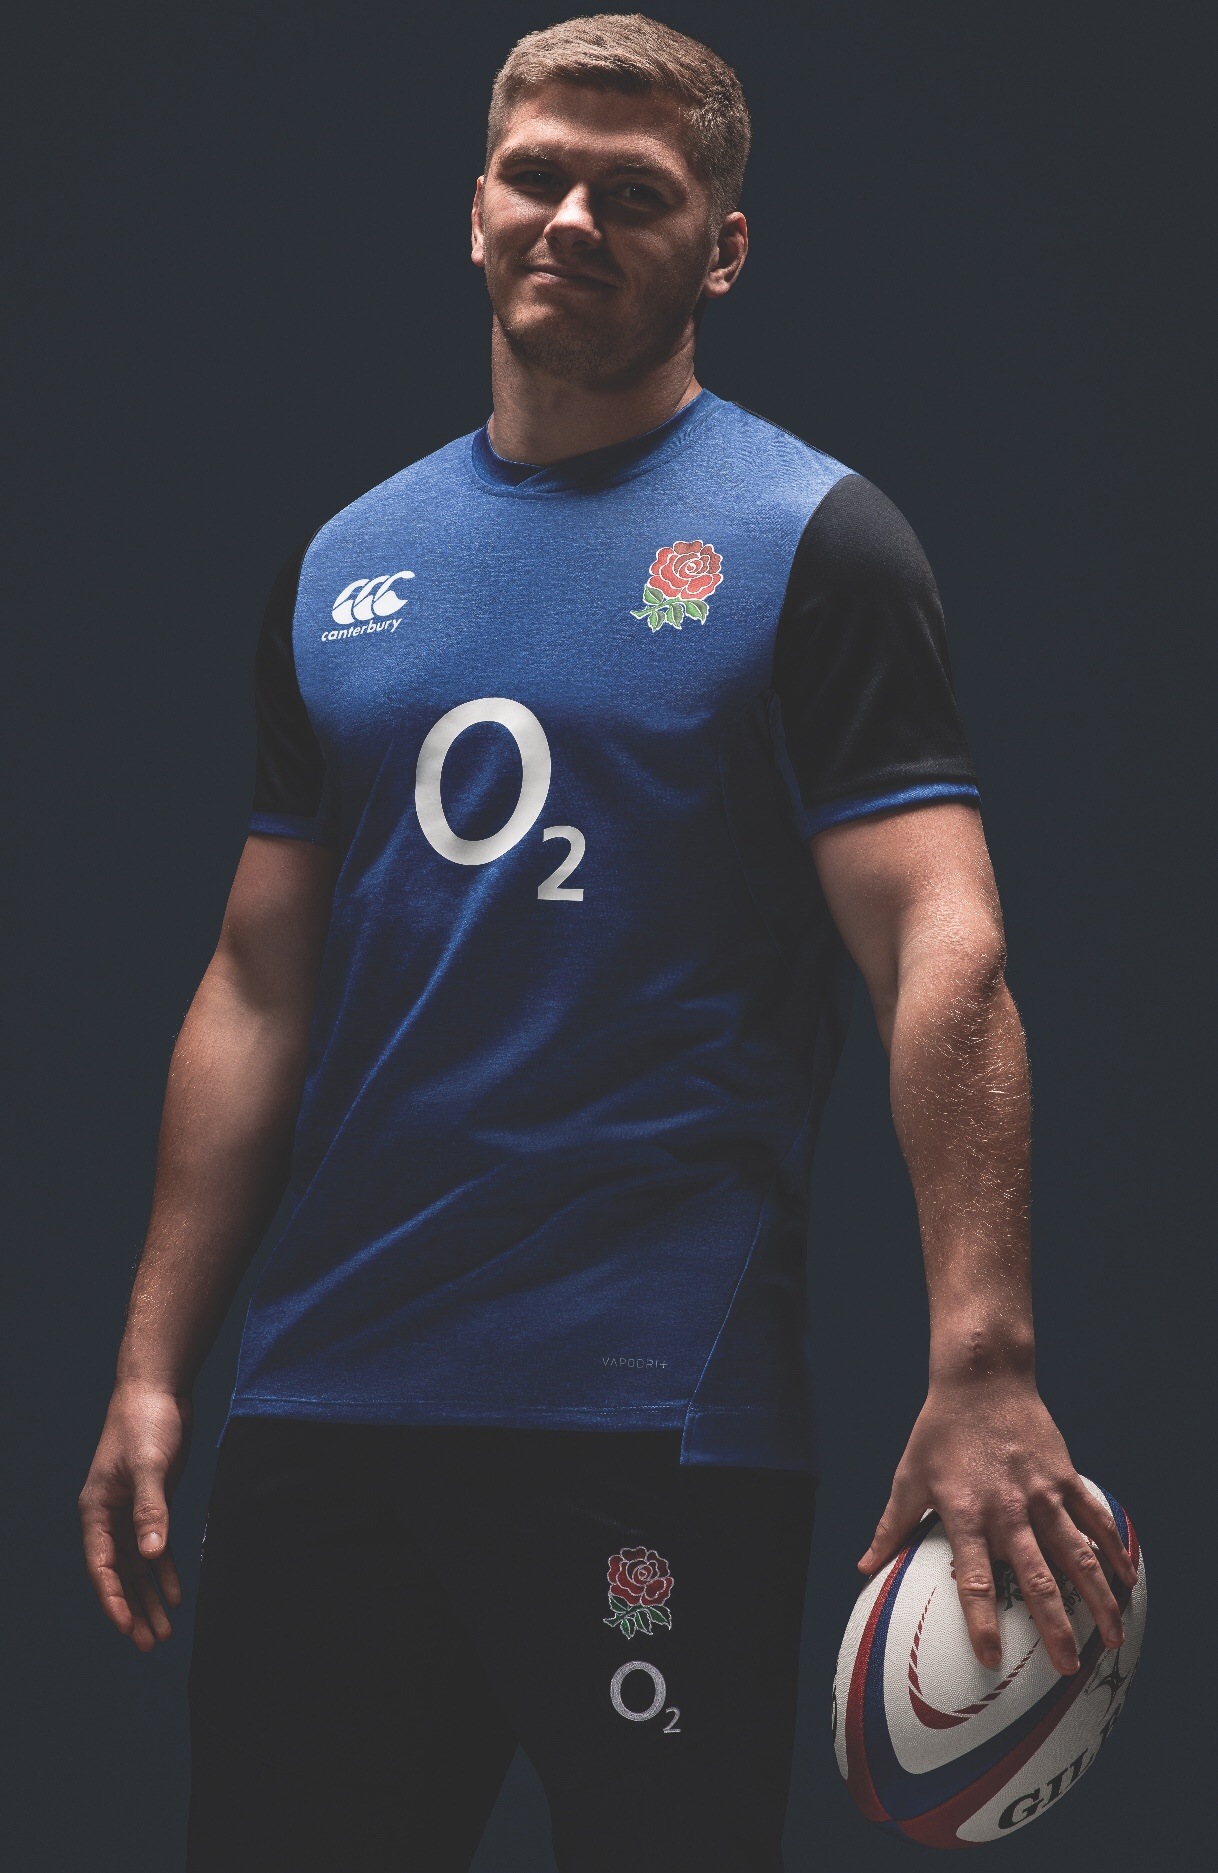 England World Cup Jersey 2020.News England Rugby Reveal 2019 Training Kit Rugby Shirt Watch